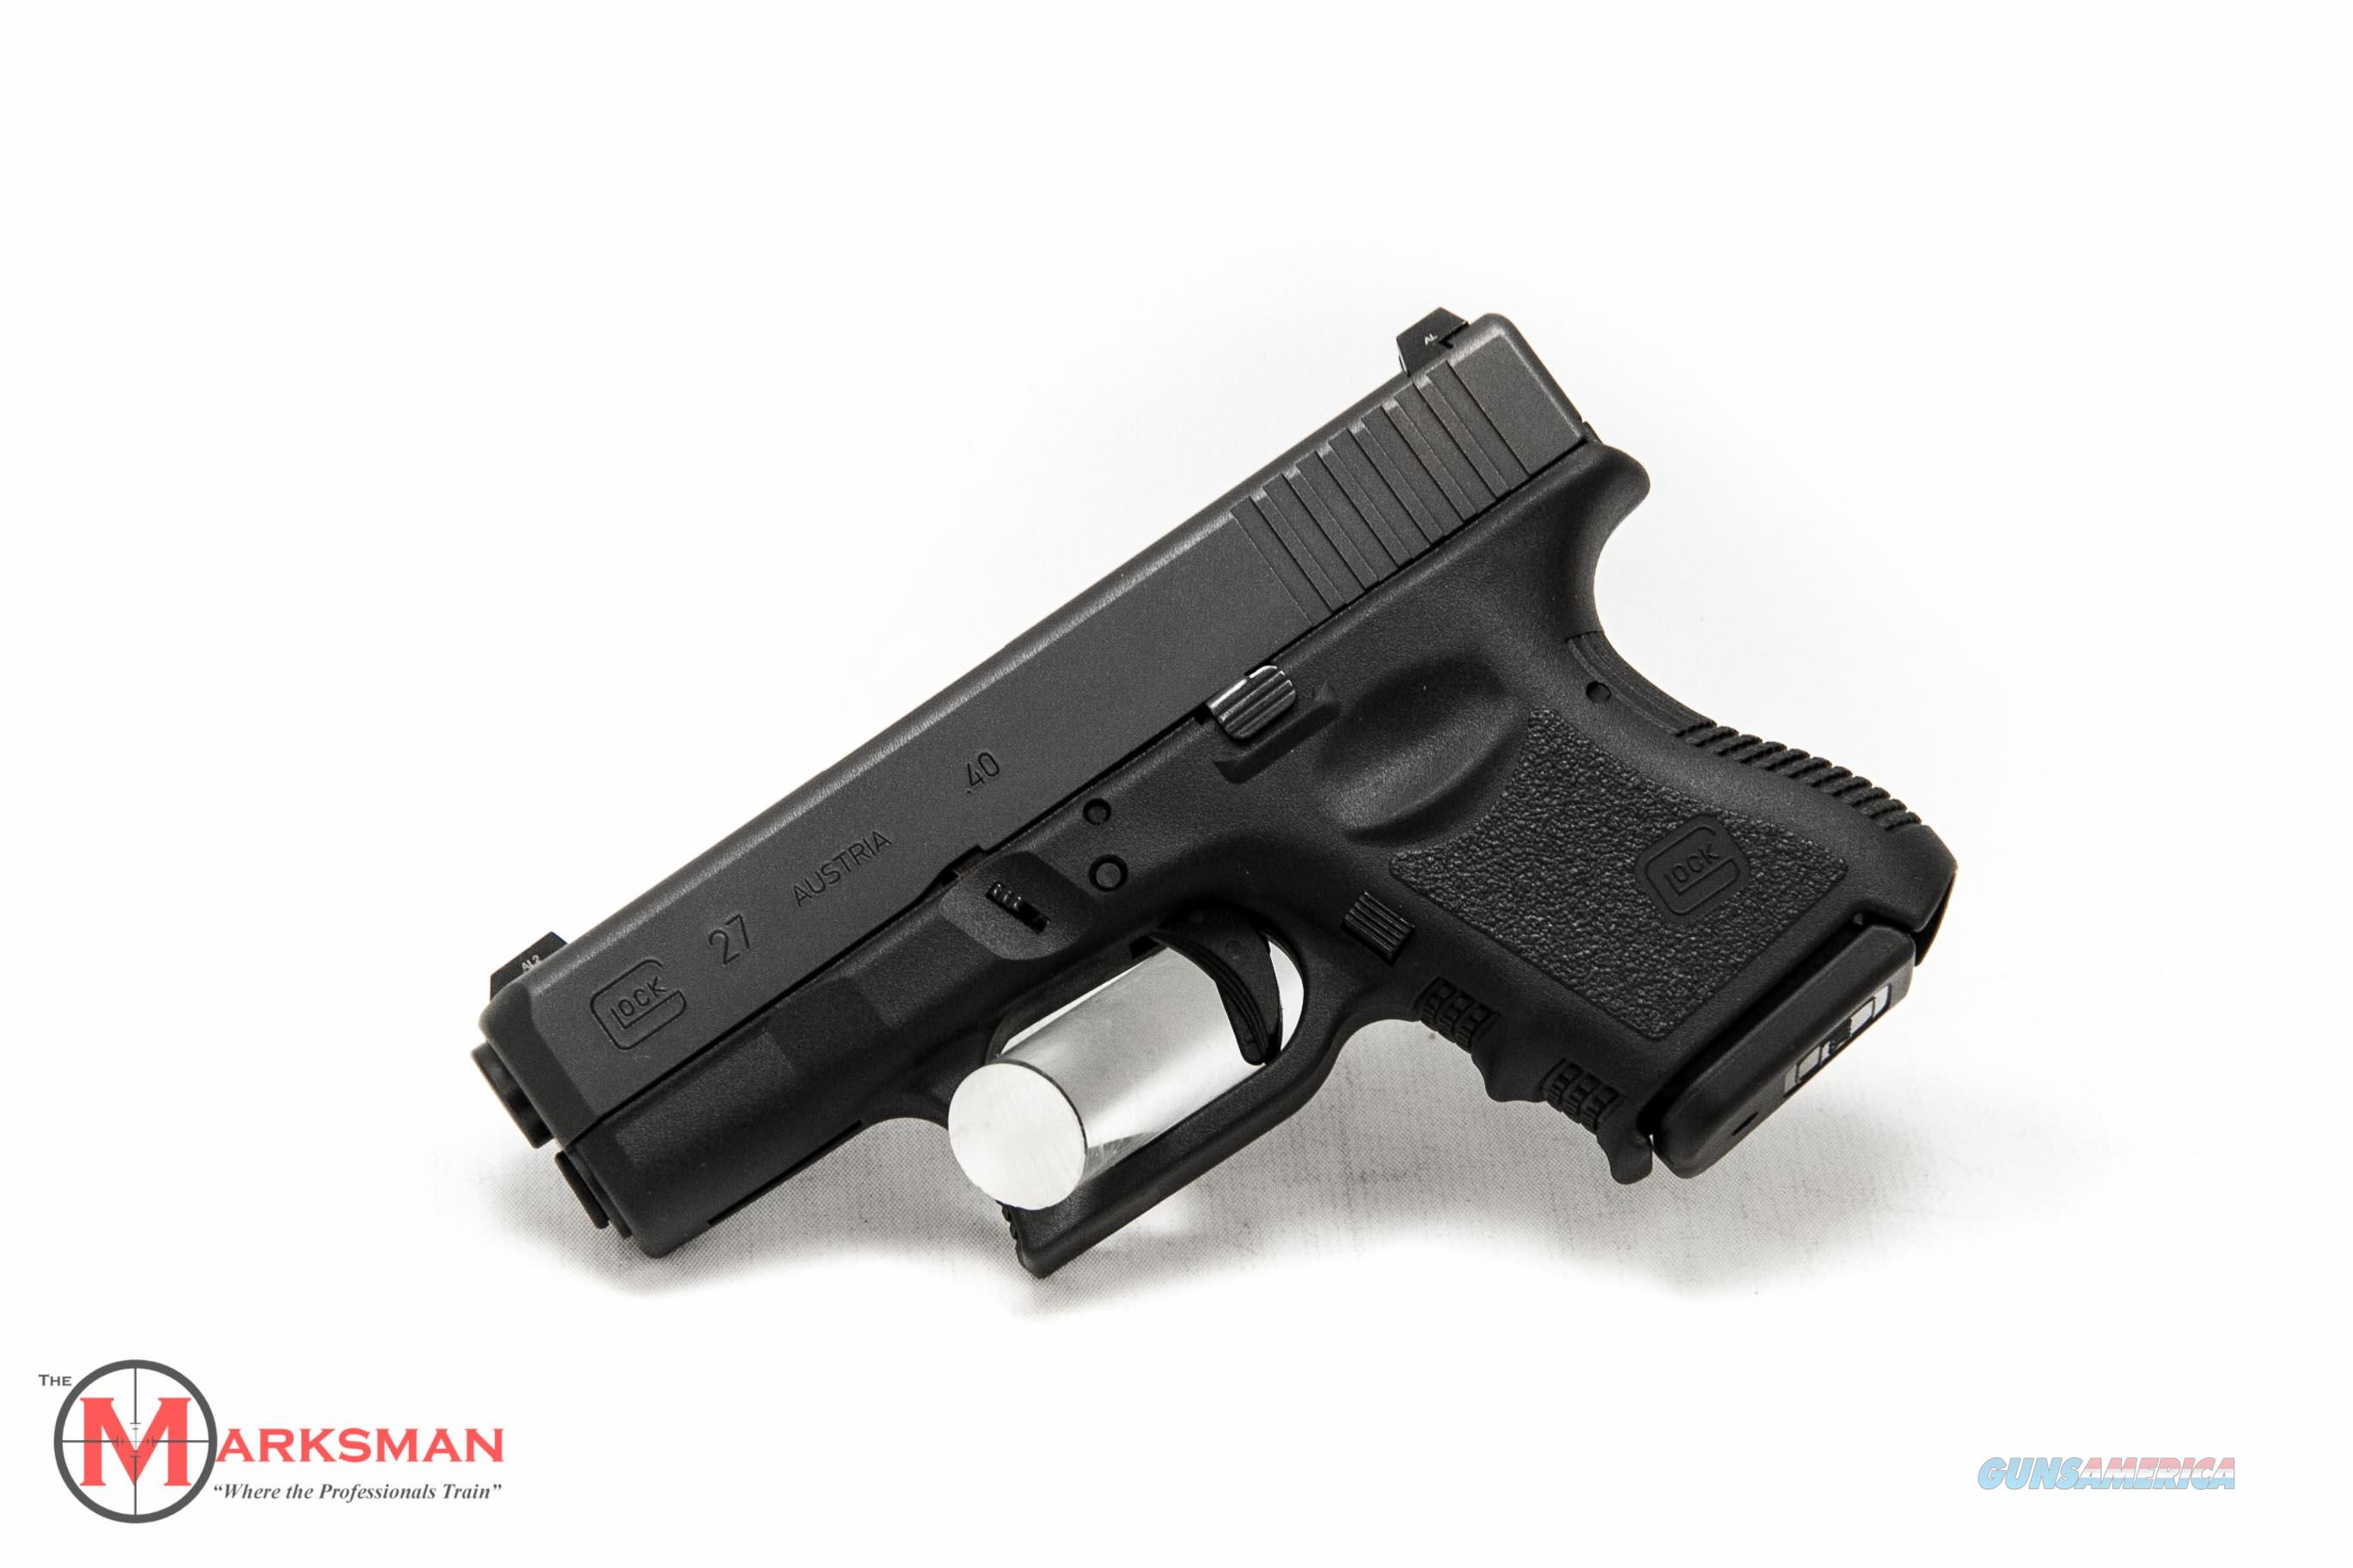 Glock 27 Generation 3 .40 S&W NEW Night Sights  Guns > Pistols > Glock Pistols > 26/27